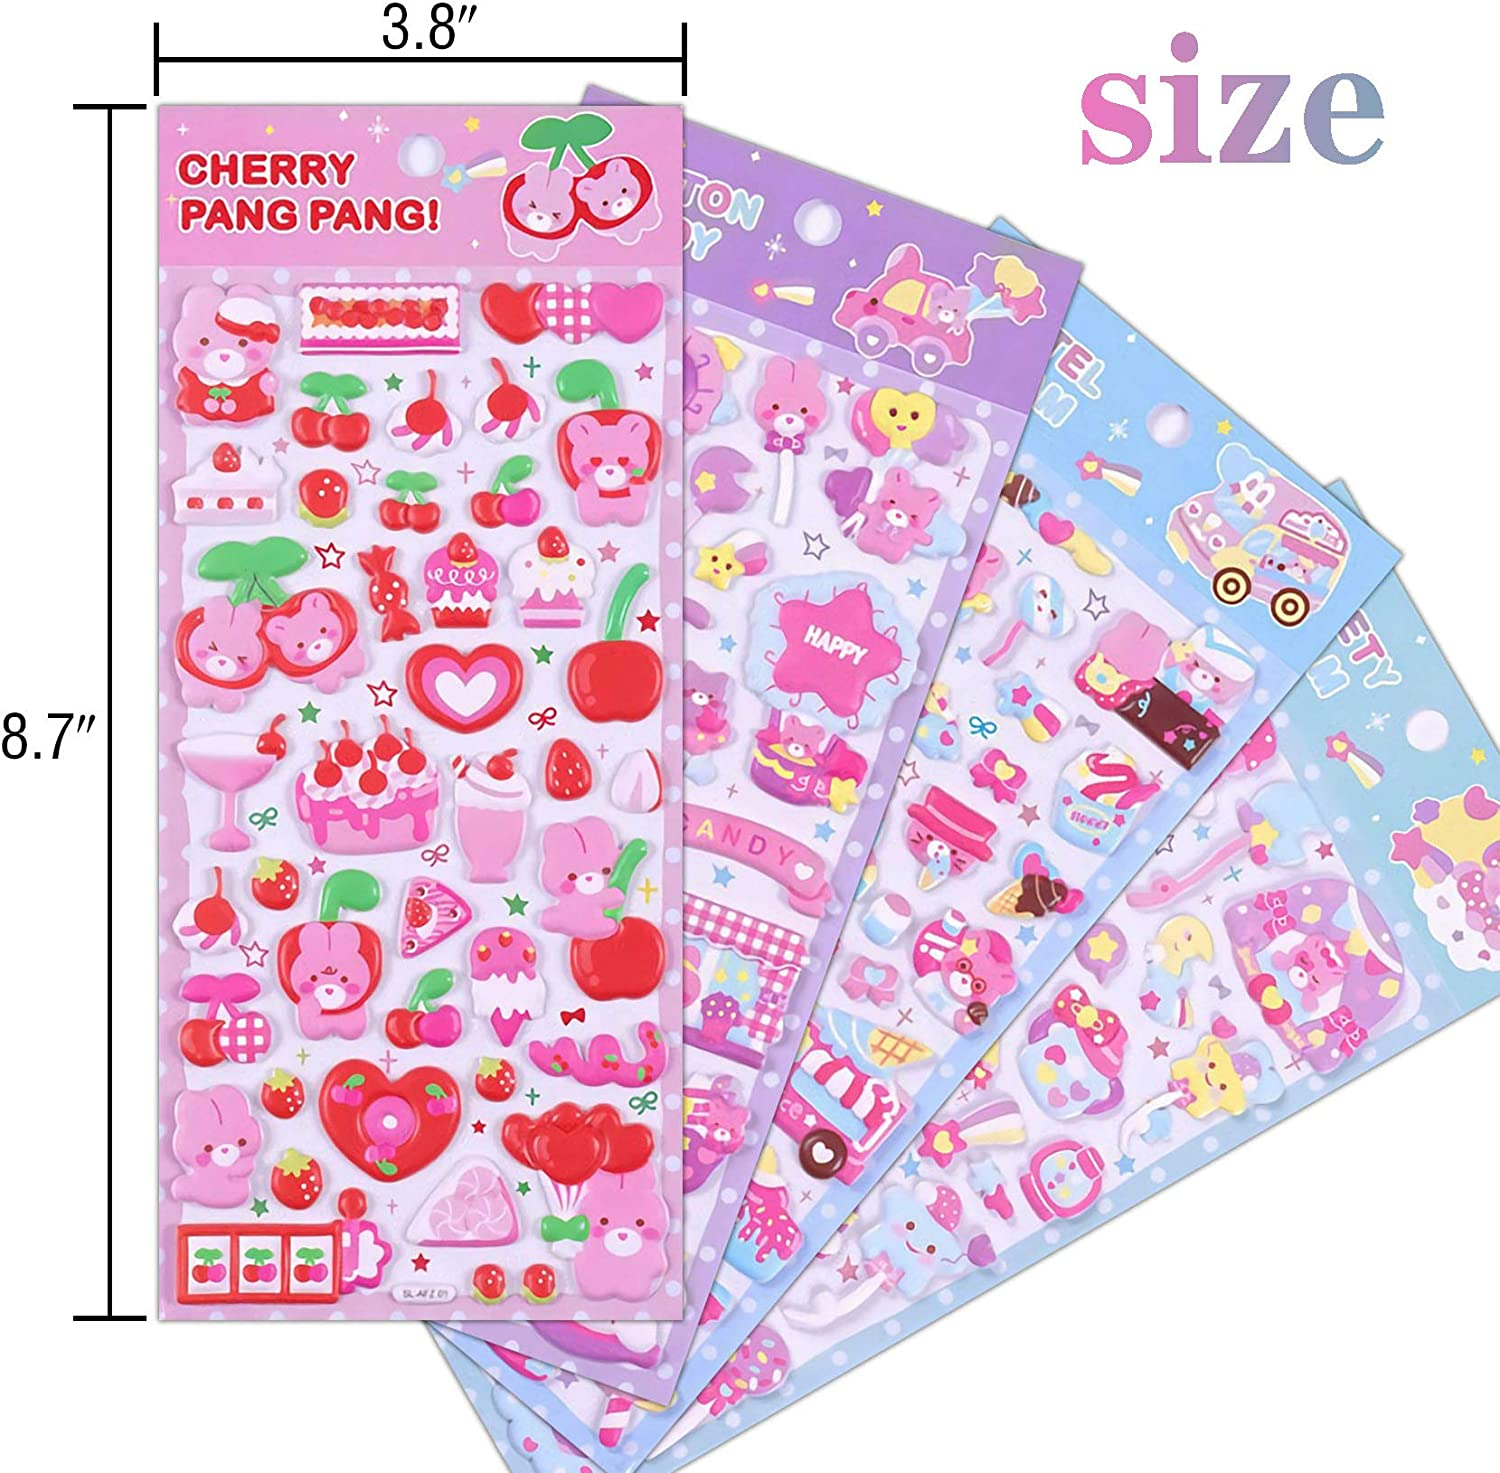 3D Puffy Sticker for Kids Girls Foam Animal Bear Heart Stickers for Girls Valentines Day Gift Bulk Scrapbooking Reward Birthday Gift Kids Stickers 4 Different Sheets Party Supplies